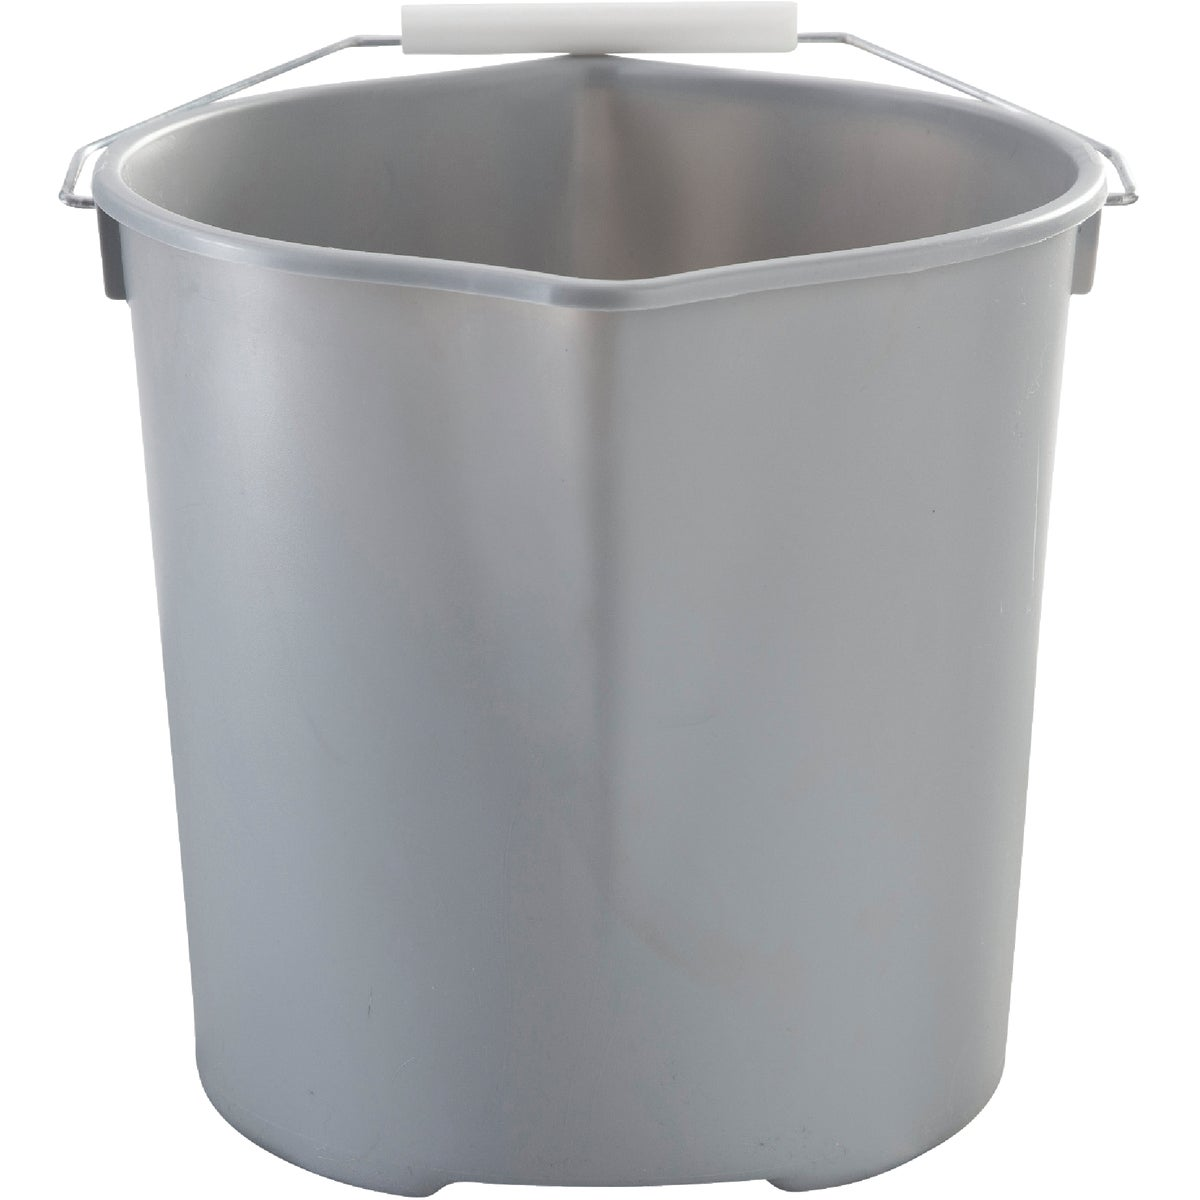 11QT BISQUE BUCKET - 2963TPBISQU by Rubbermaid Home